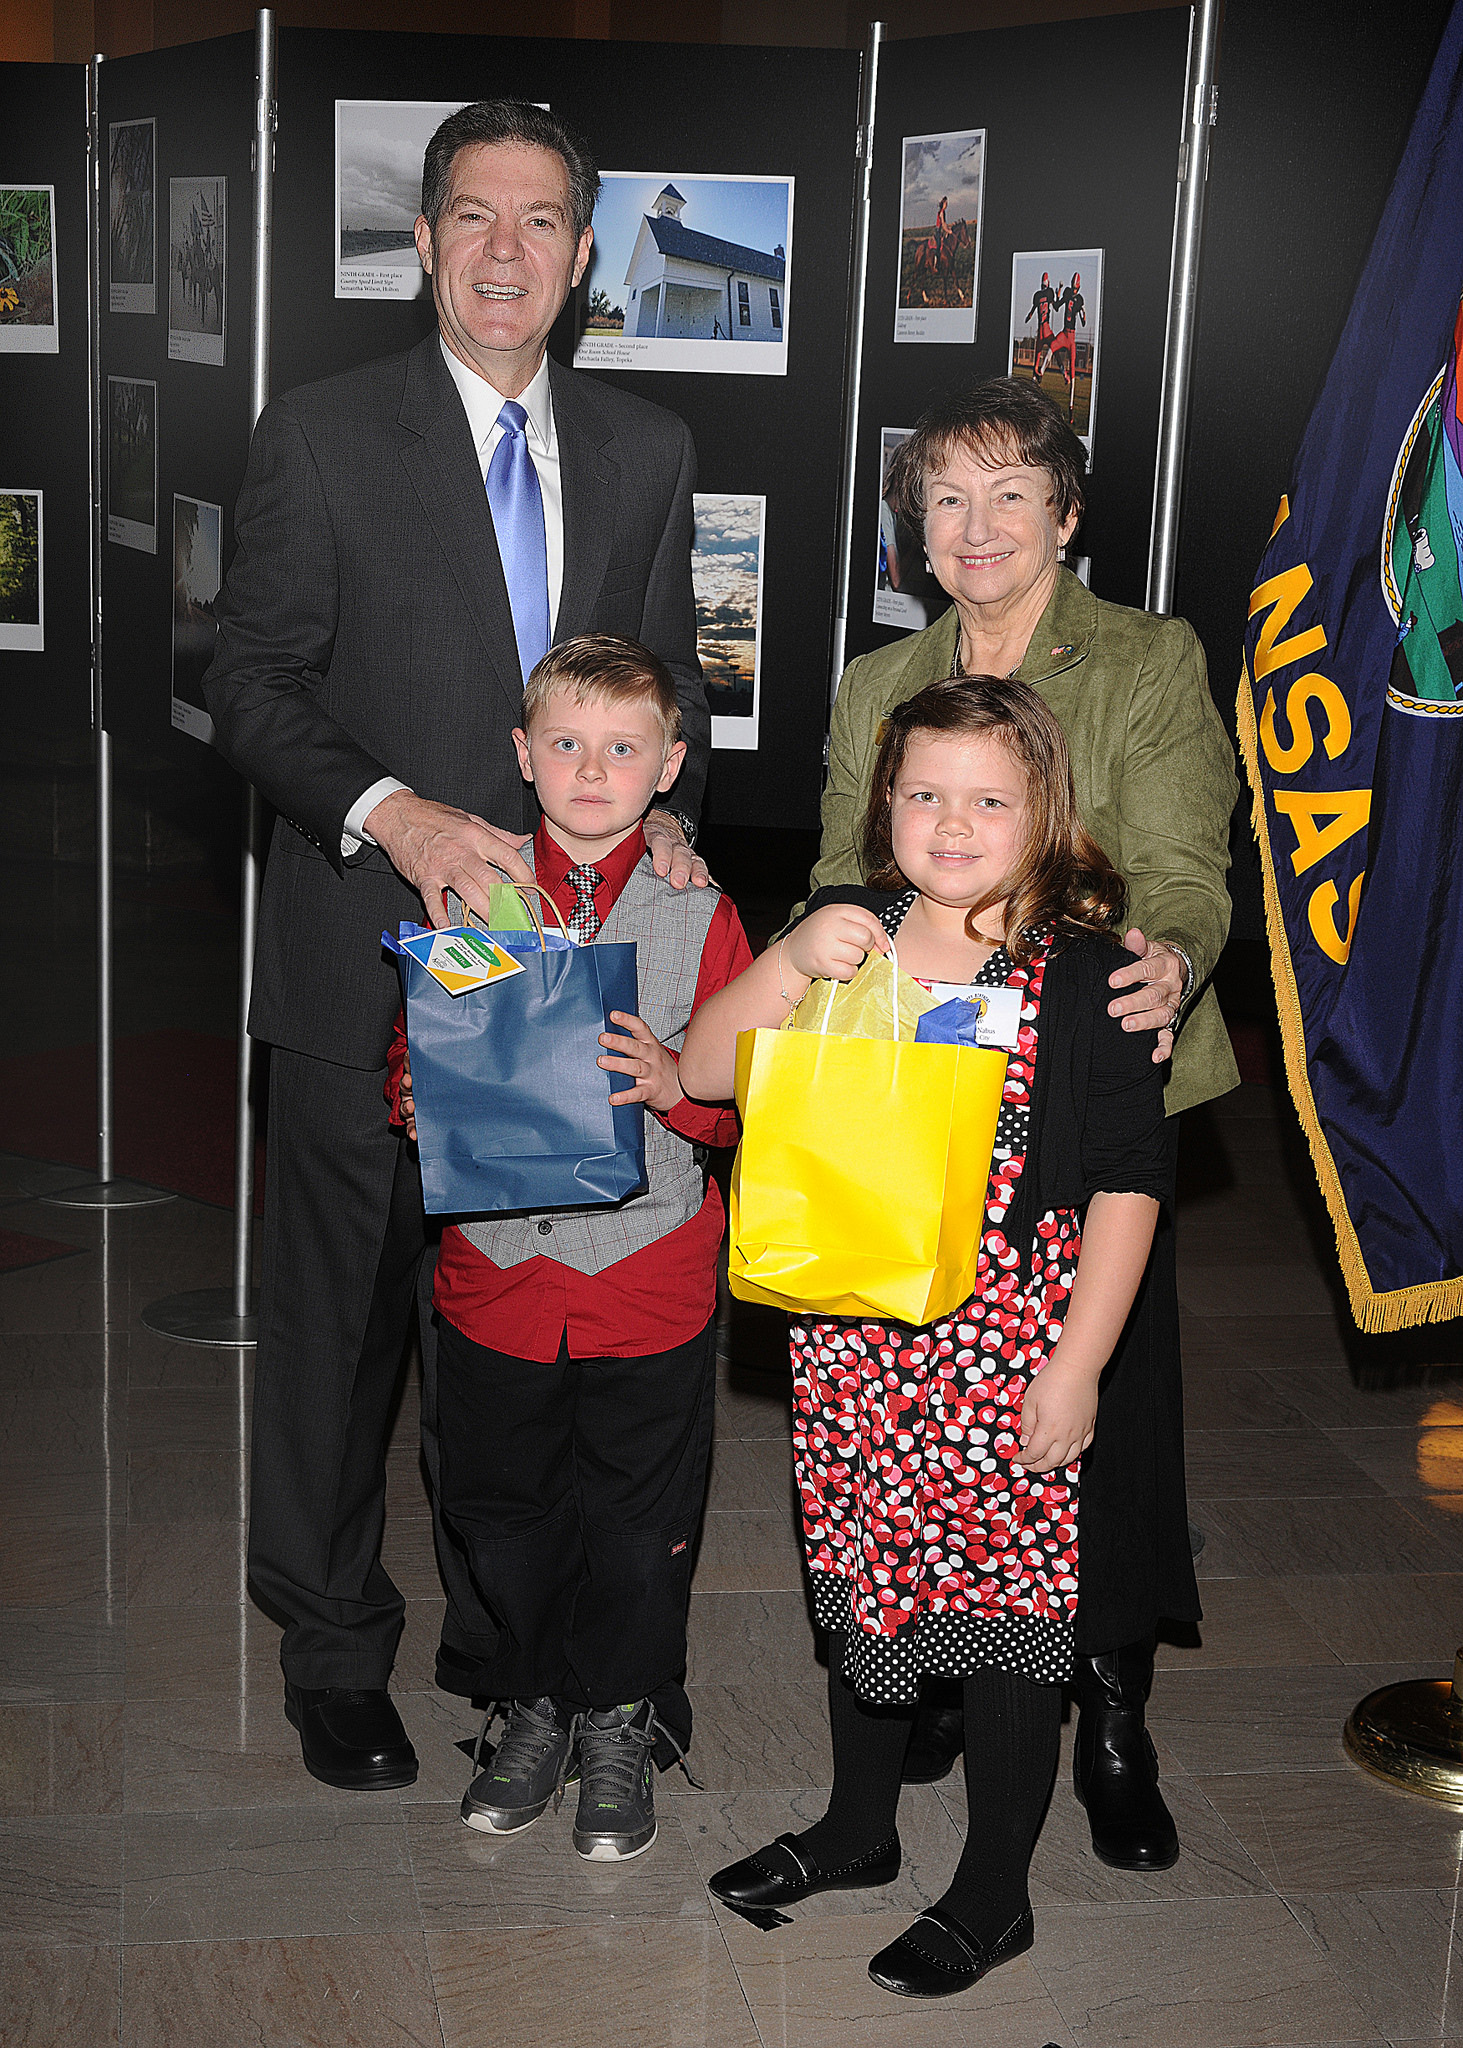 Second grade winners Spencer Wilson and Morgan Nabus with Governor Sam Brownback and Marearl Denning